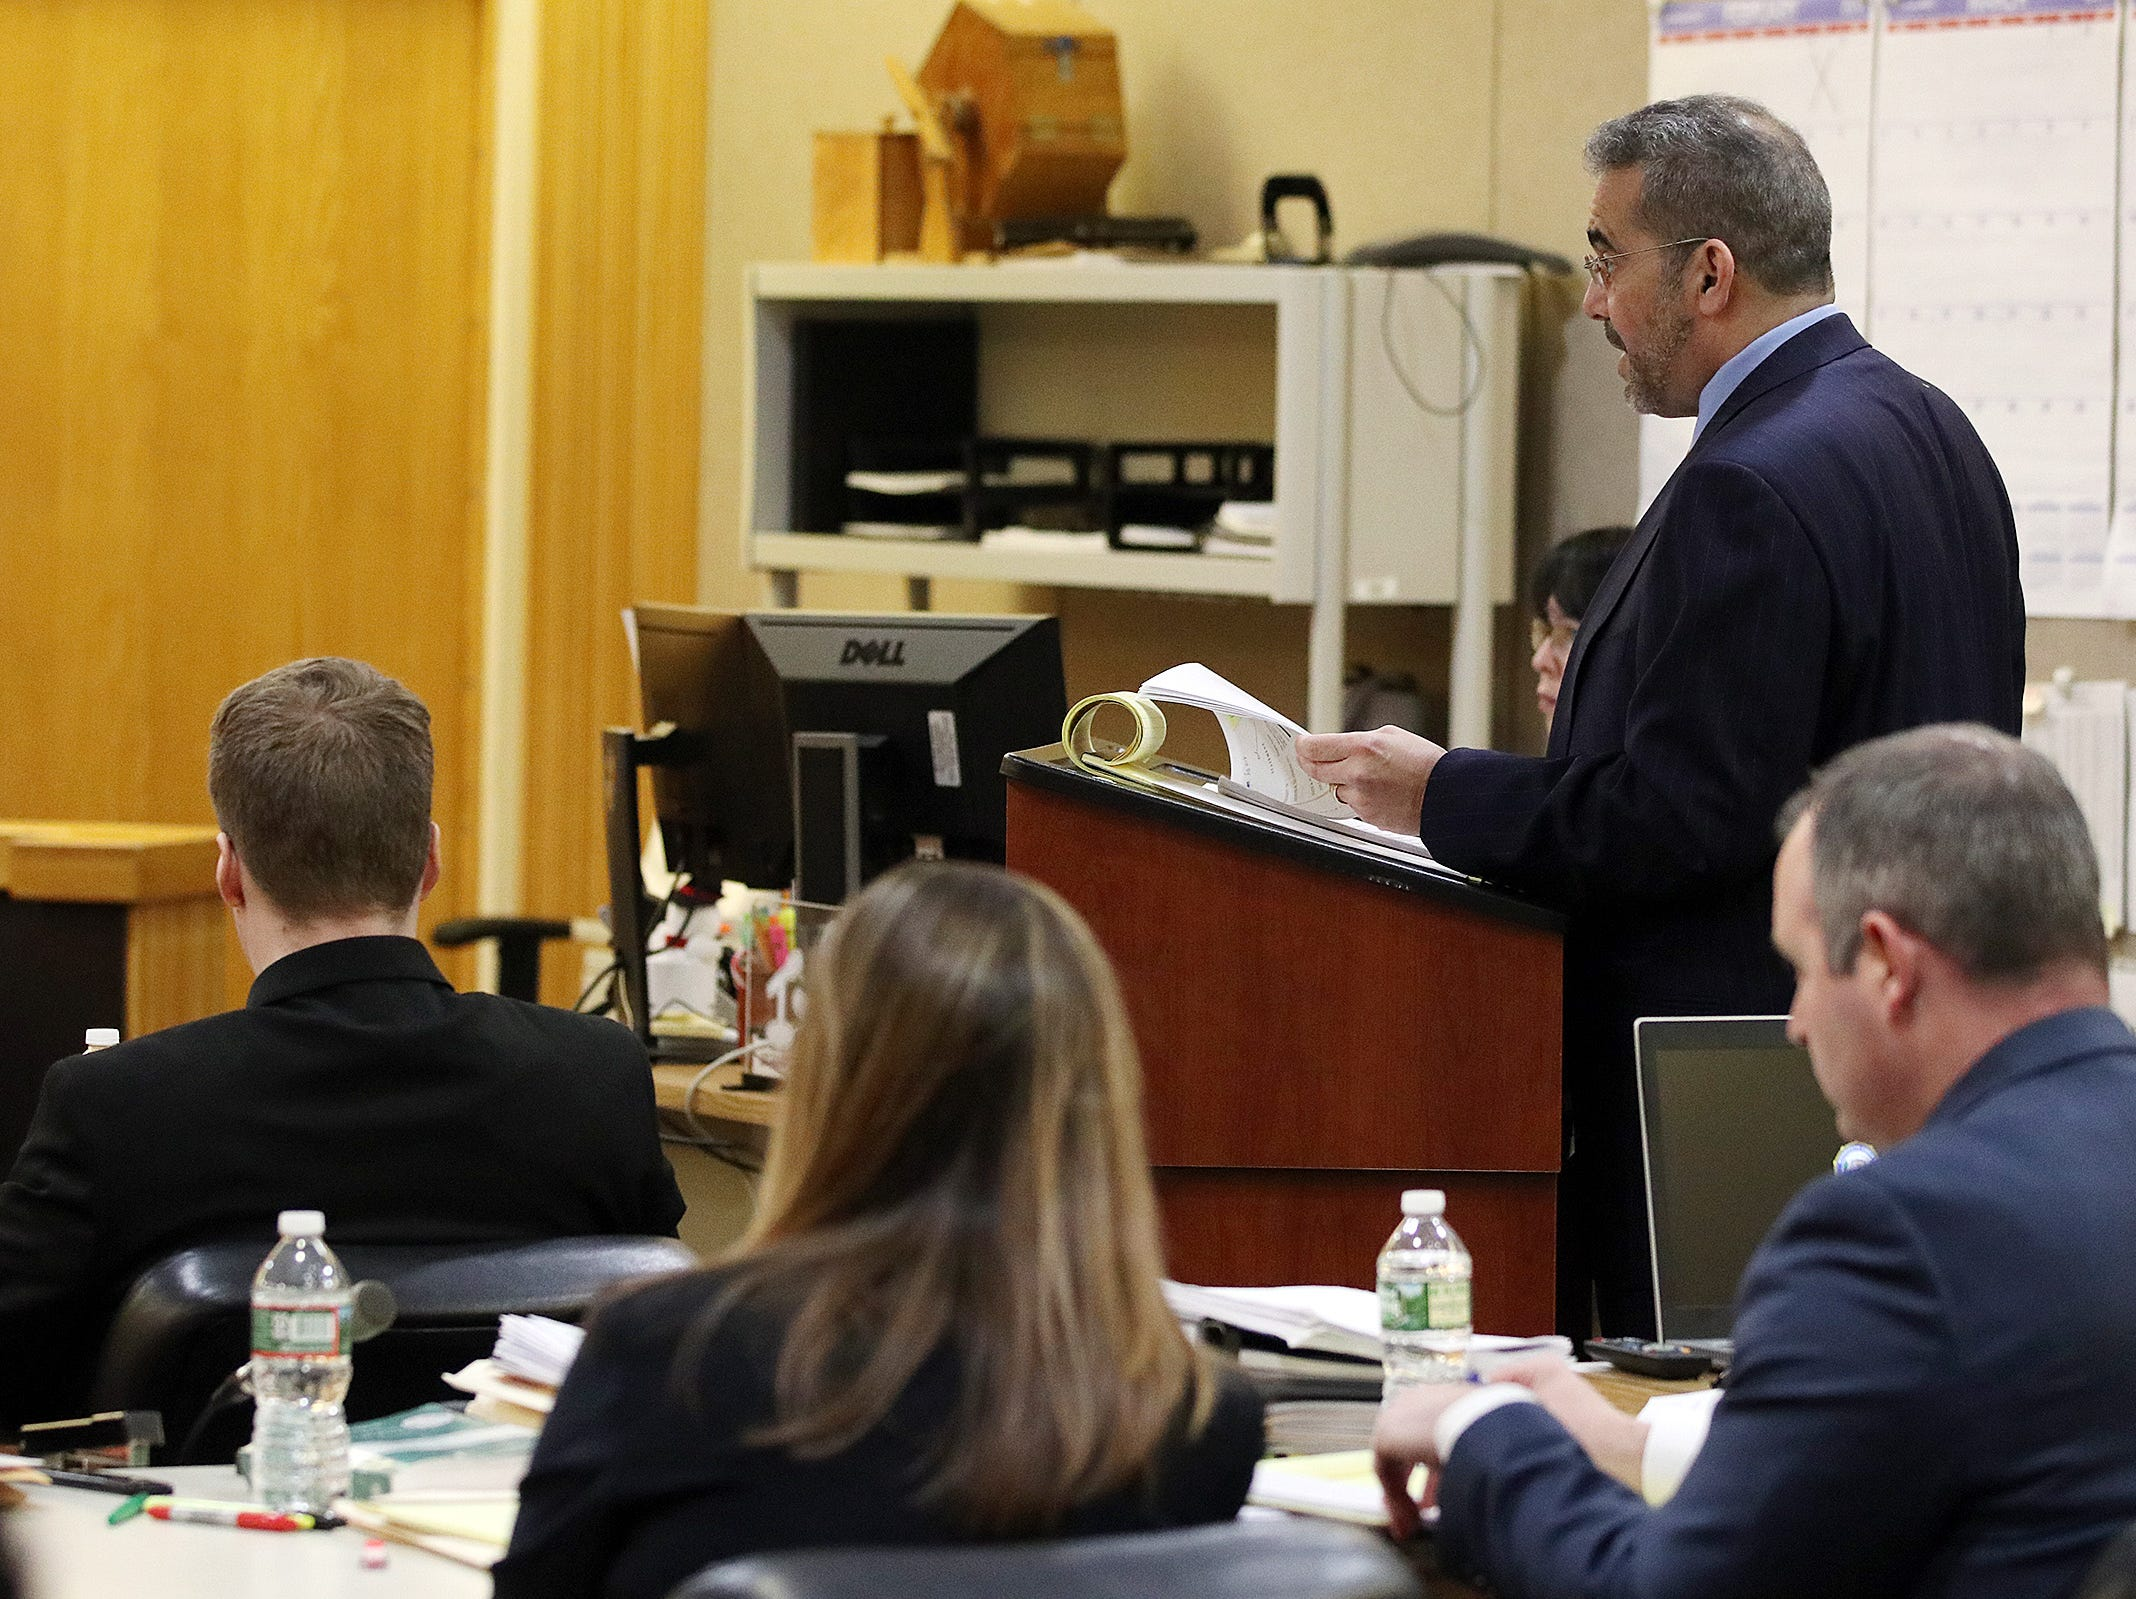 Detective Brian Weisbrot of the Monmouth County Prosecutor's Office, is cross examined by (pictured) Carlos Diaz-Cobo, defense attorney, as he testifies during the trial of Liam McAtasney, who is charged with the murder of former high school classmate, Sarah Stern, before Superior Court Judge Richard W. English at the Monmouth County Courthouse in Freehold, NJ Wednesday, February 20, 2019.